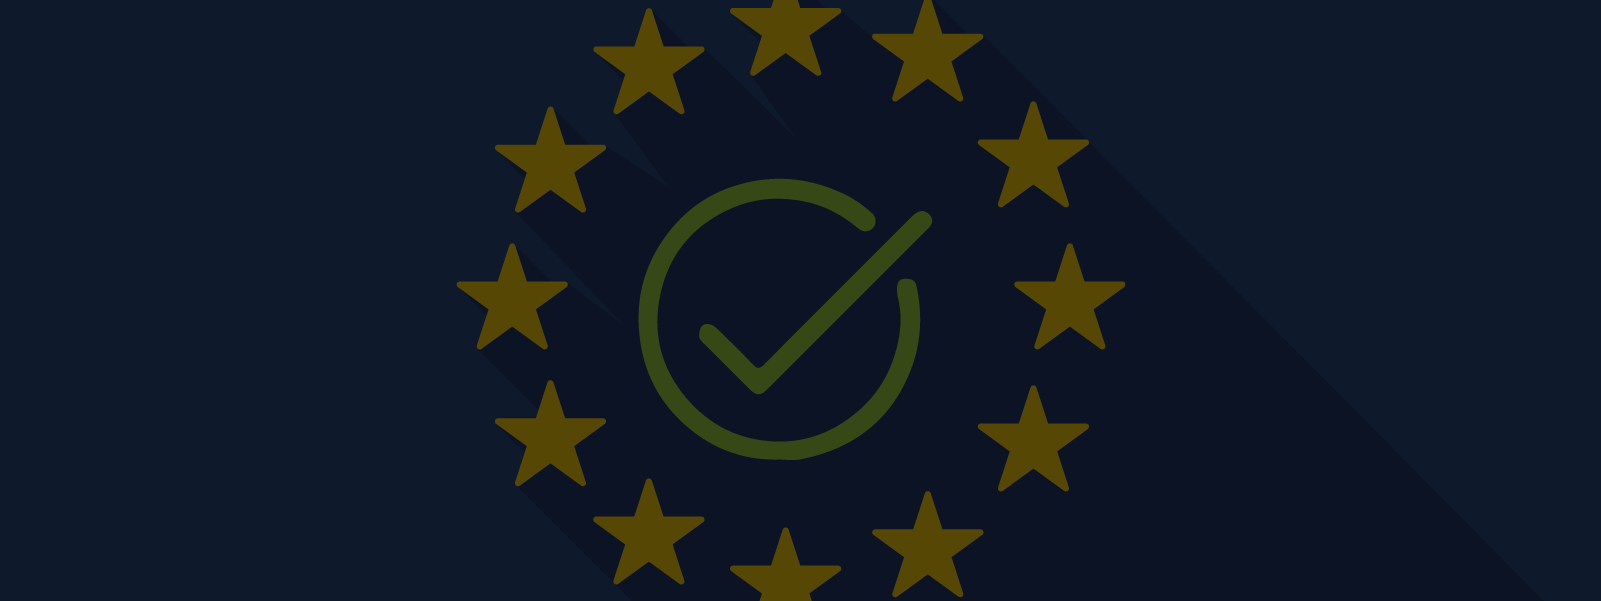 Introducing the ShareThis GDPR Compliance Tool: A streamlined consent management solution